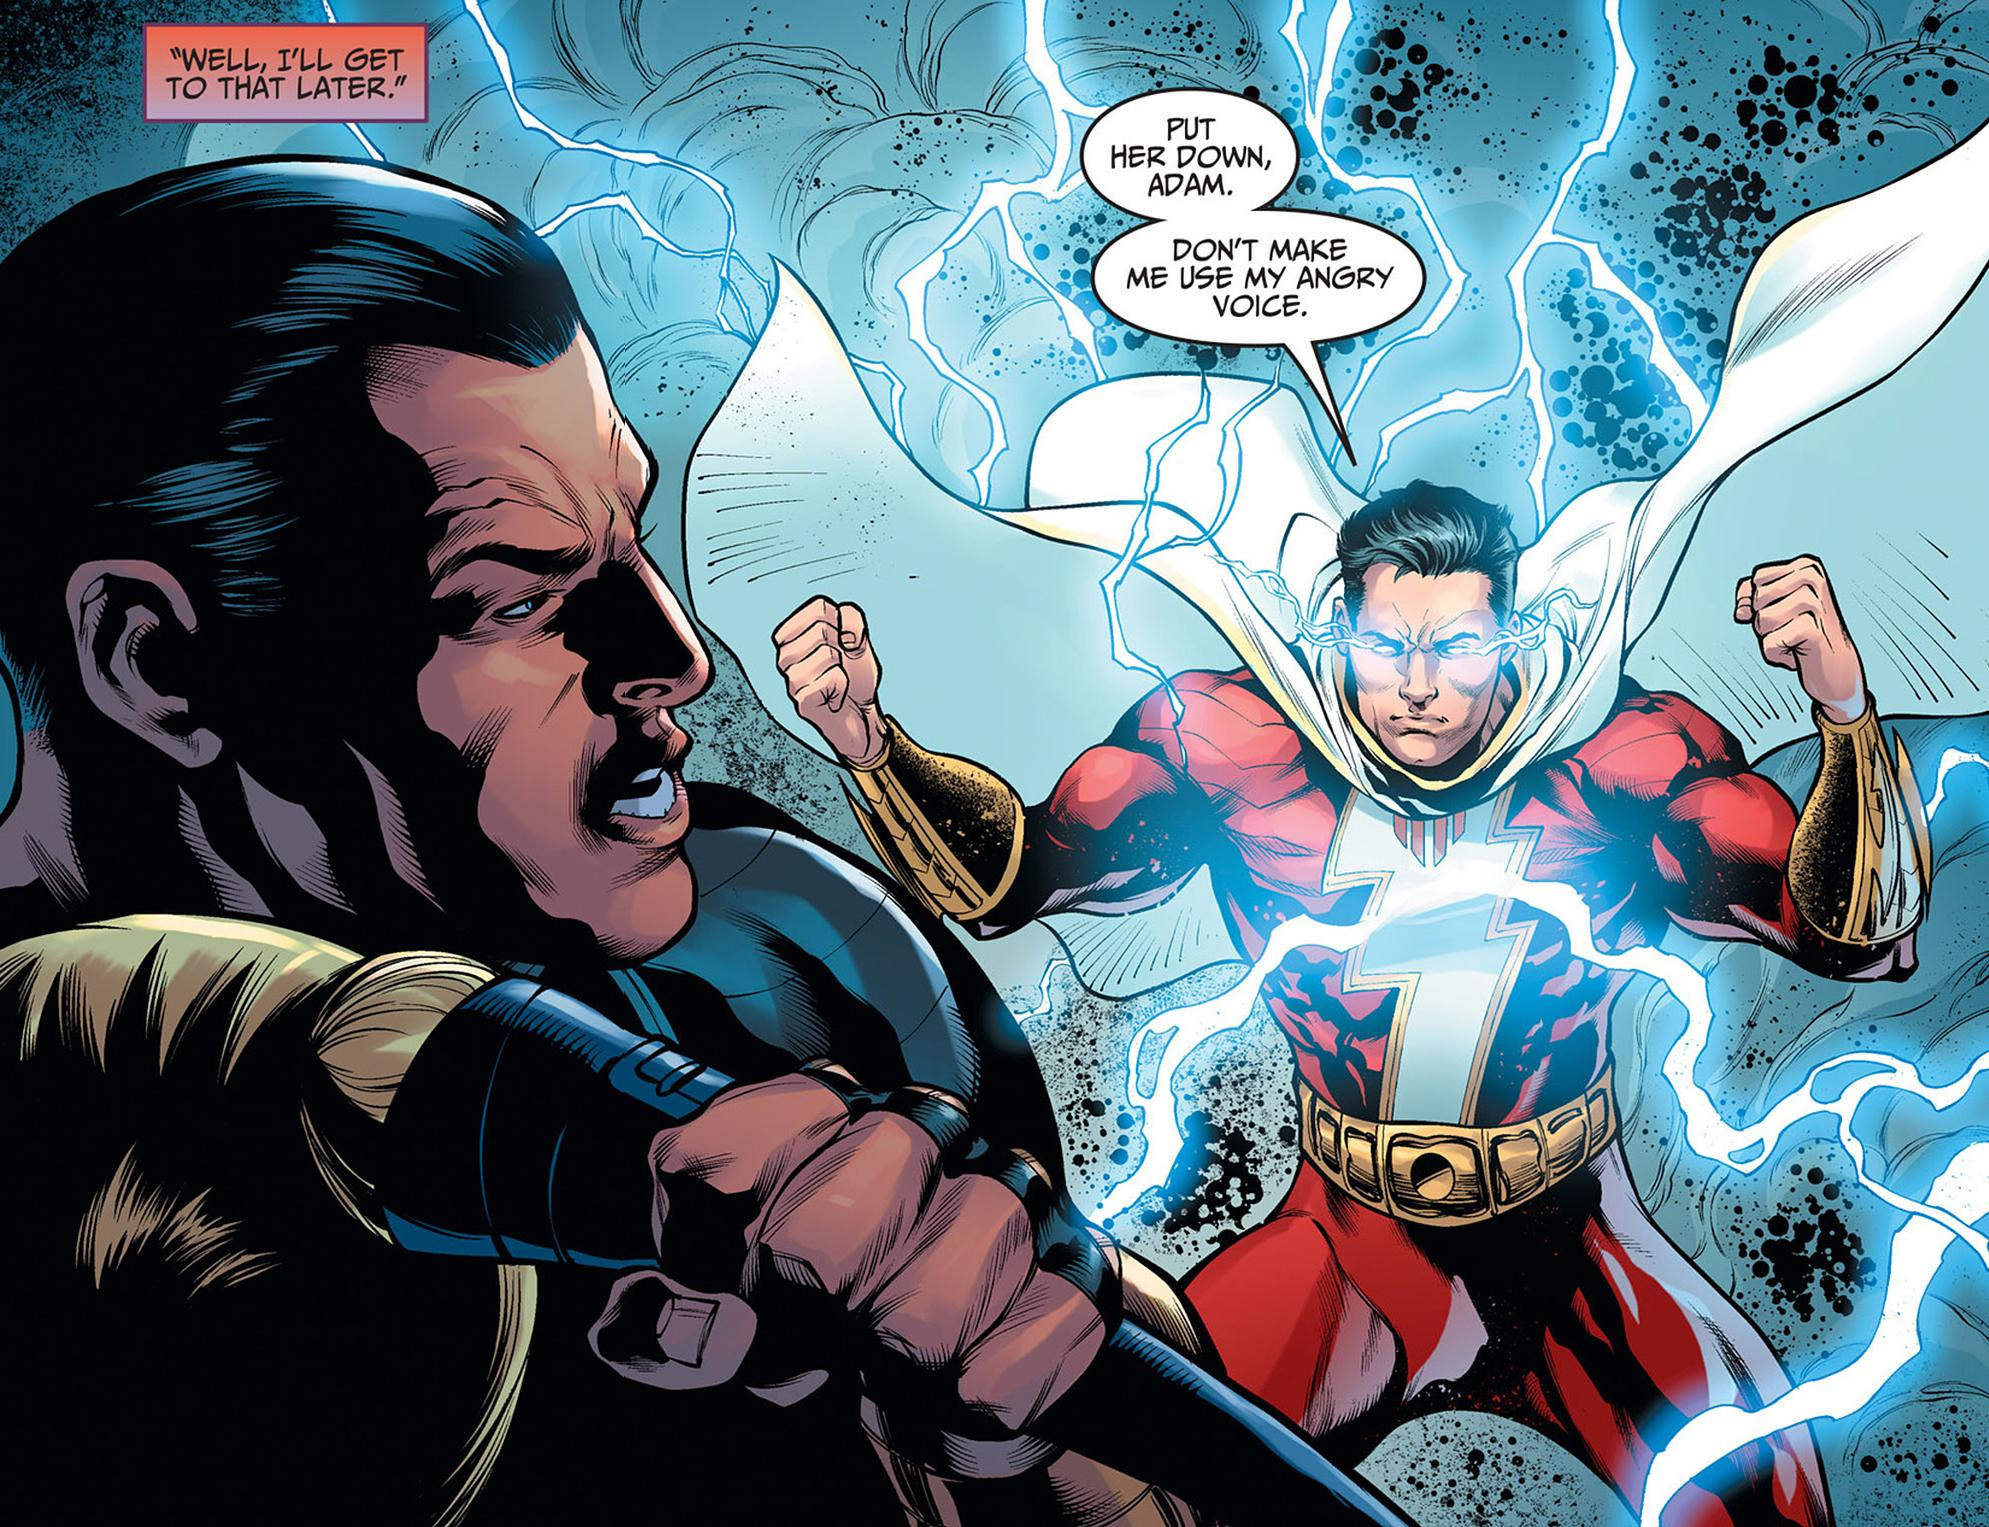 shazam-black-adam-dc-comics-1573762986081.jpg